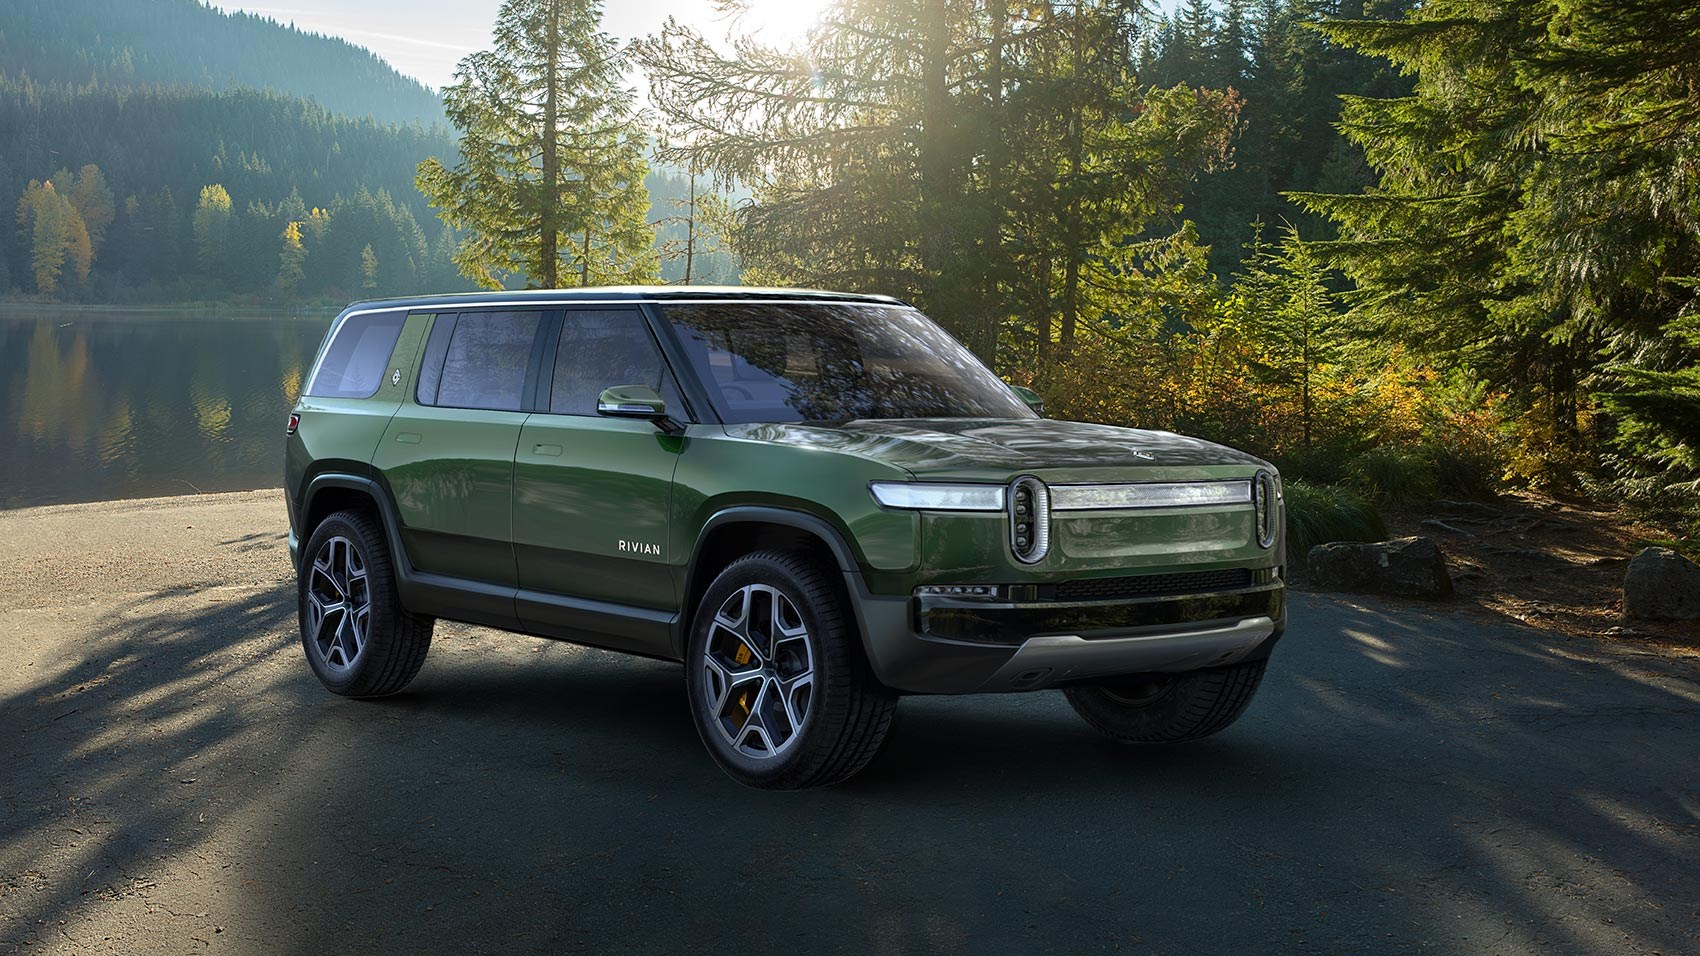 Ford's $500 million investment in Rivian to yield new electric vehicle